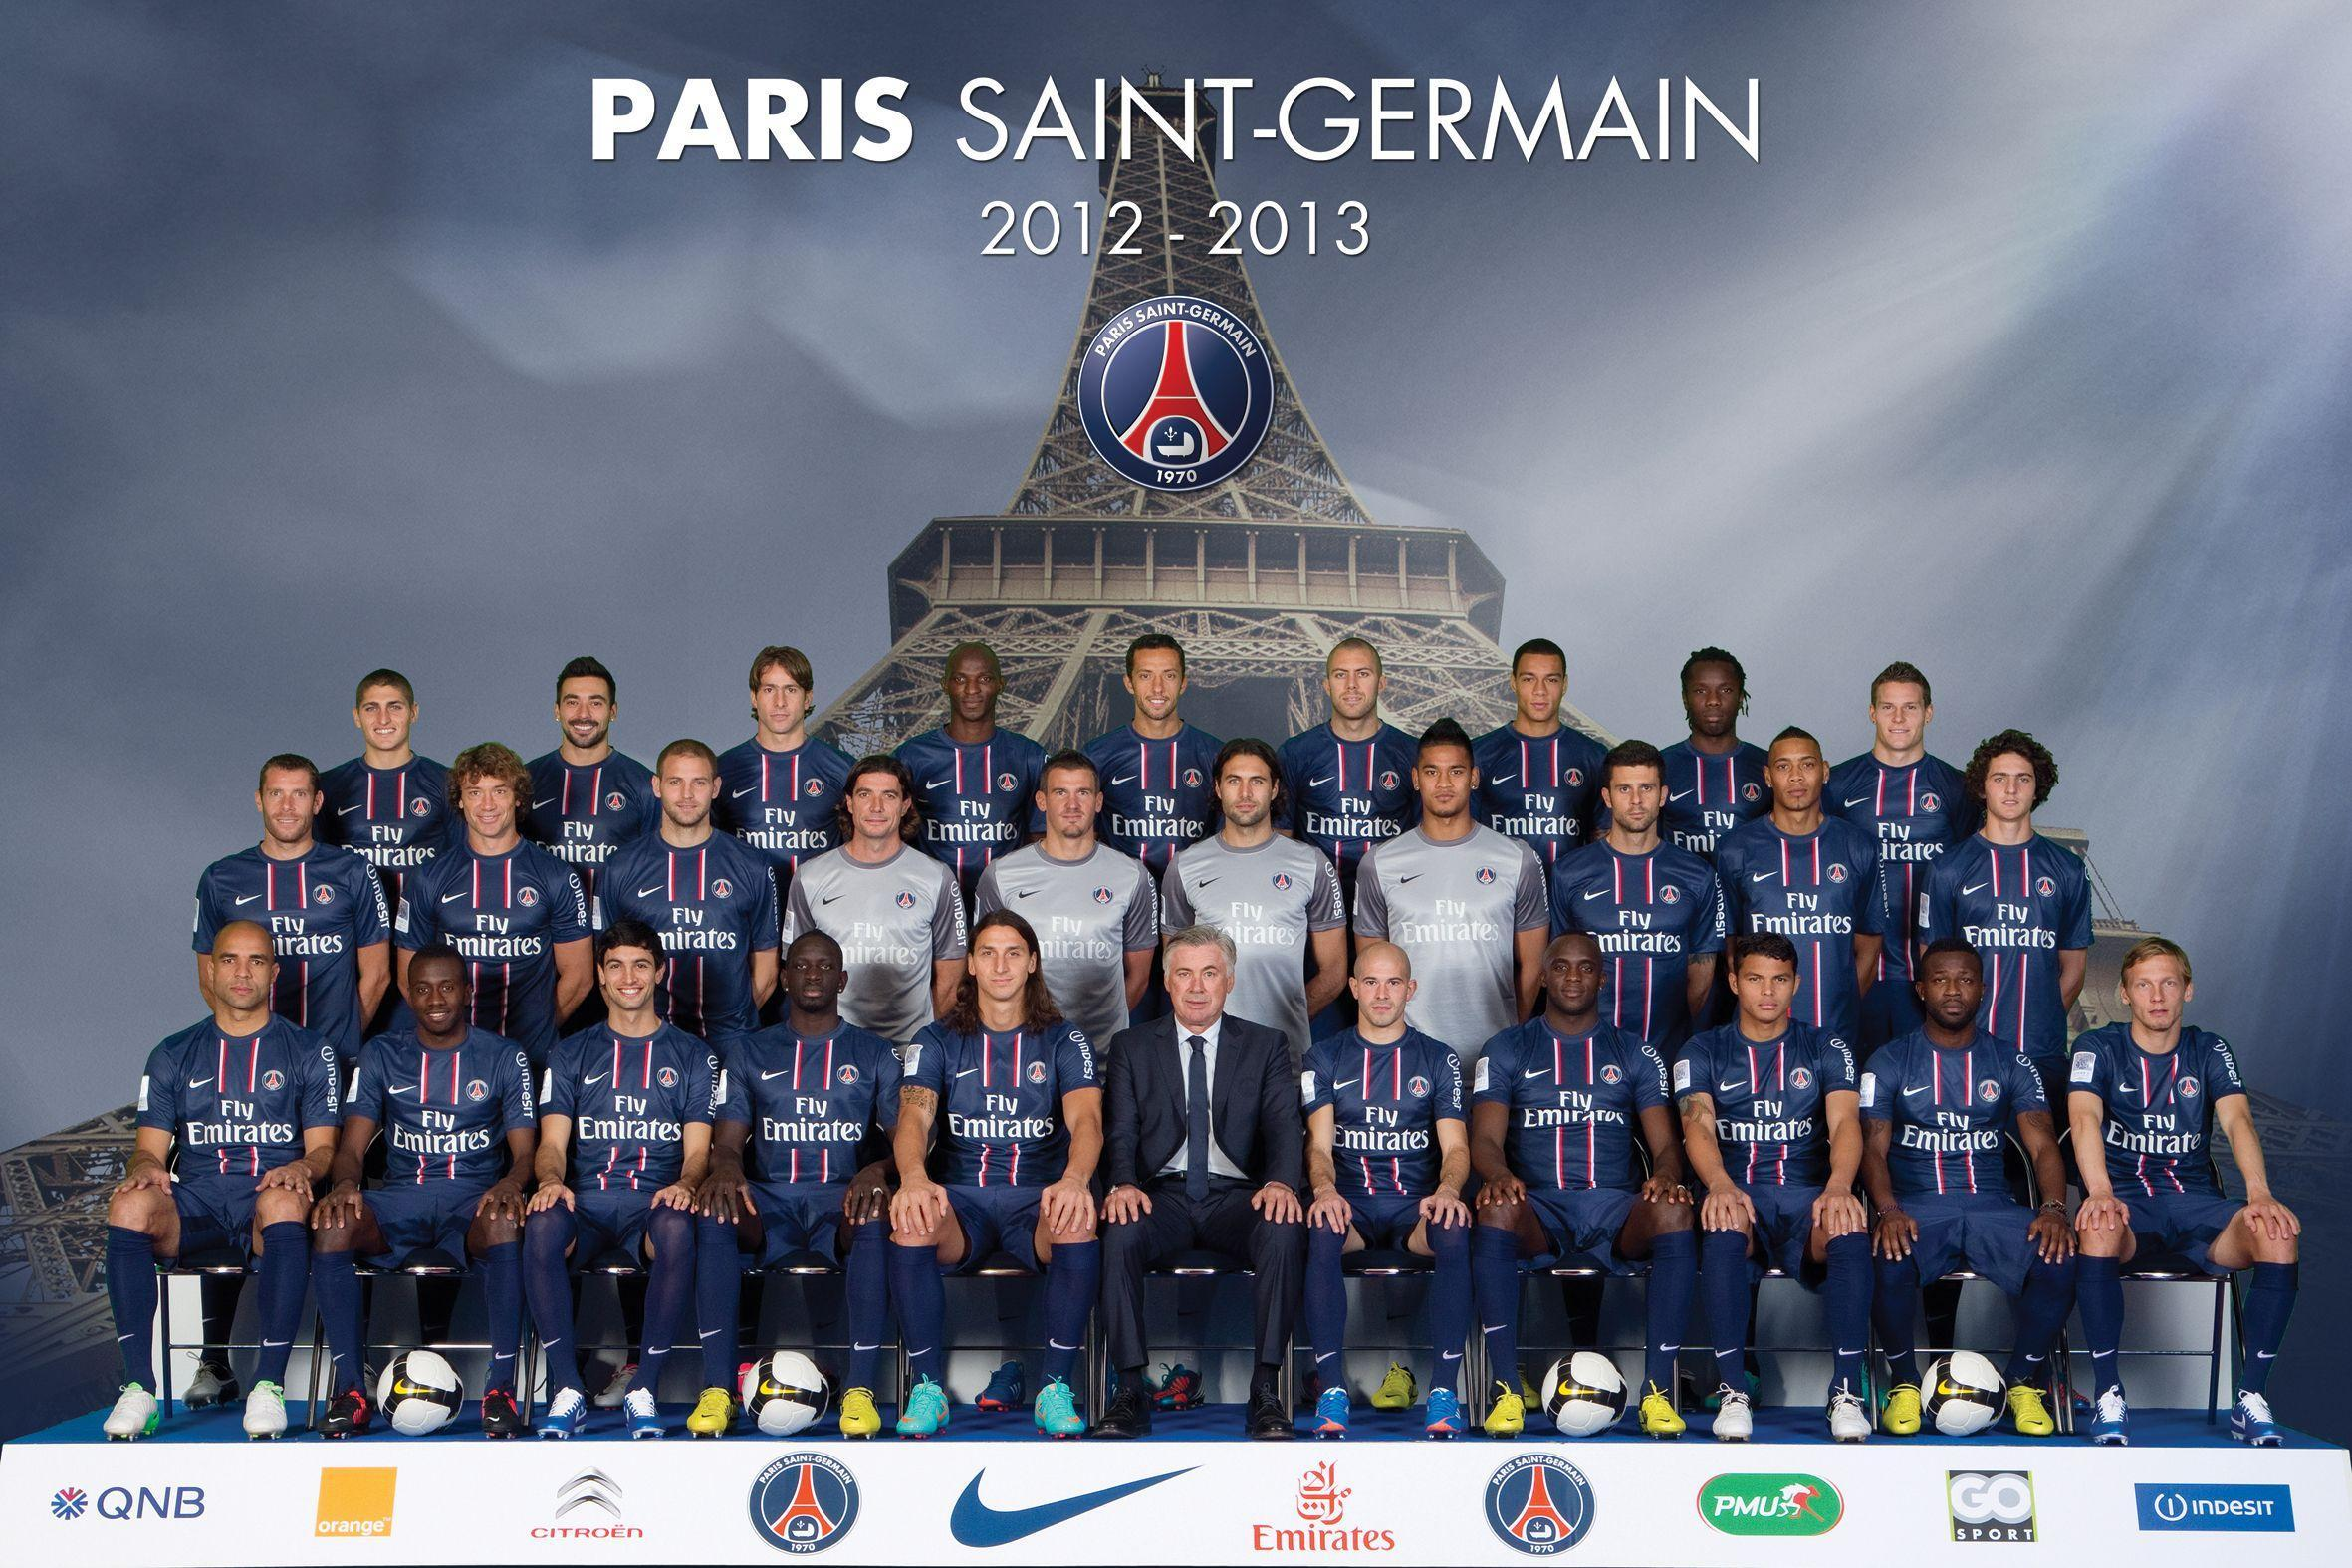 paris saint german Buy paris saint-germain tickets online all home and away fixtures for sale now great prices safe & secure.